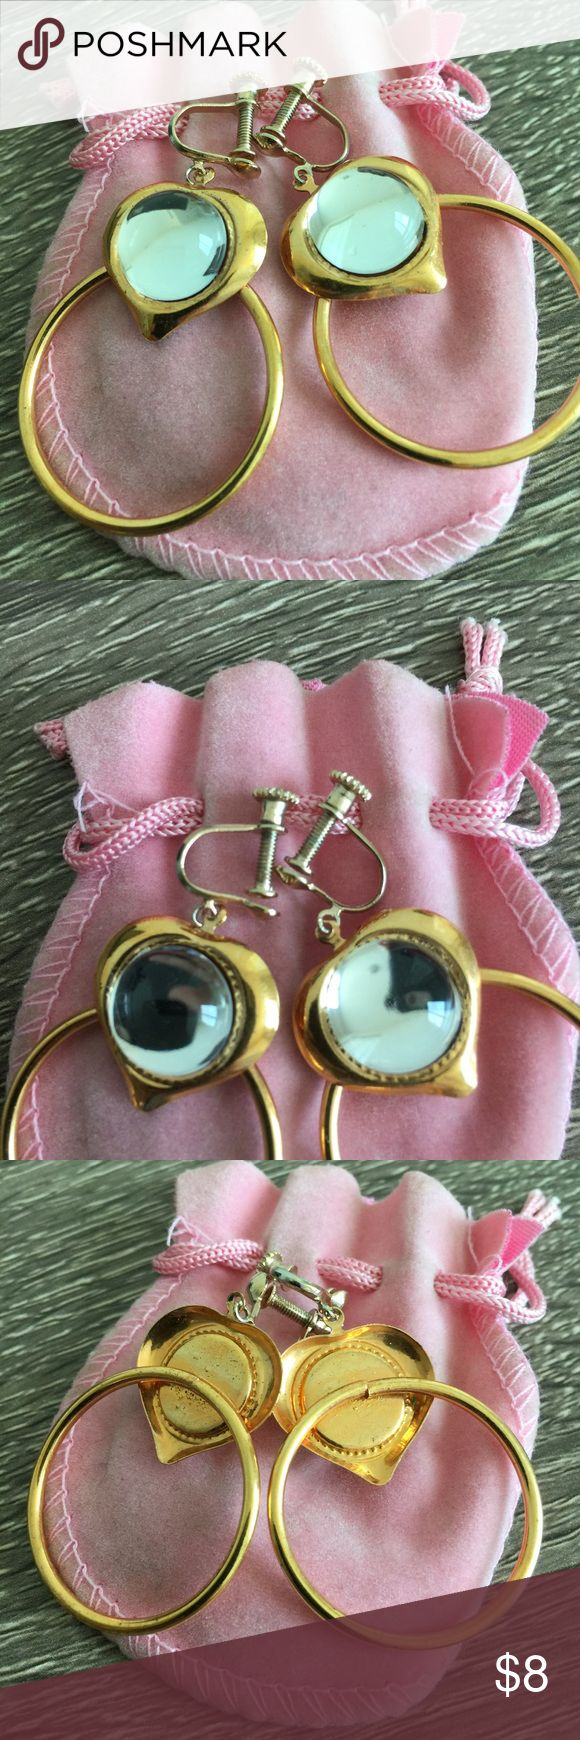 Screw in Clip Earrings 🌷Please Read the description! Thanks!🌷  Had these for a very long time. They were a gift, but I have never needed or wore them. Mirrored finish. Came with the pink jewelry bag.   Color may be slightly different bcz of lighting  ✅REASONABLE offers through offer buttons only ❌LOWBALL offers (plz consider the 20% commission) ❌TRADE Thank u for visiting my closet!  Happy shopping!💖 Jewelry Earrings